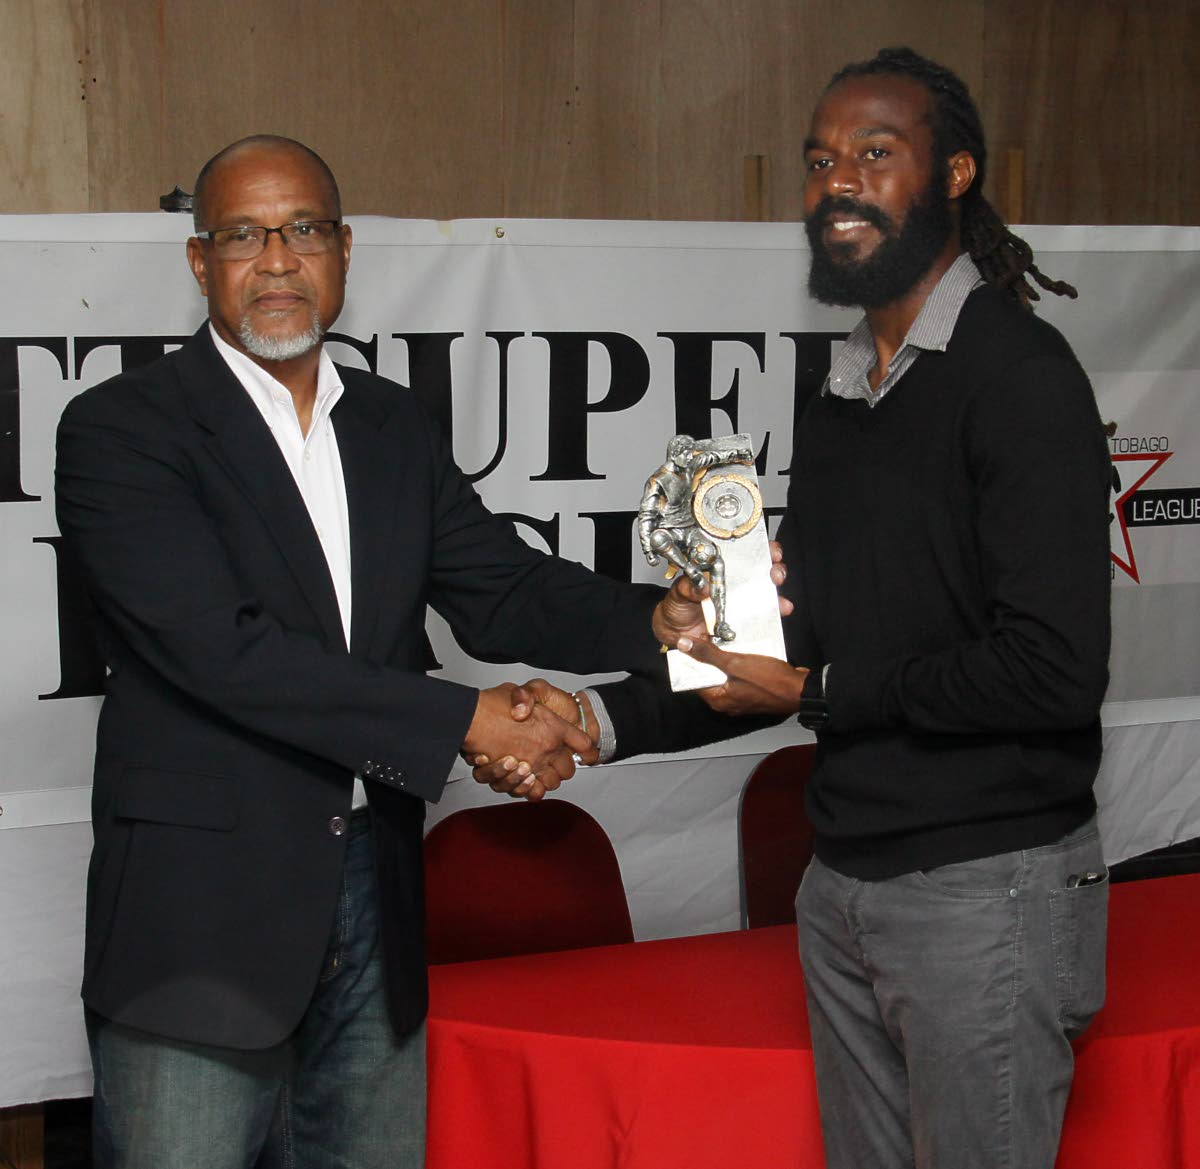 Super League president Keith Look Loy, left, presents the MVP award to Queen's Park defender Yohance Marshall at the league's awards ceremony at WASA Sports Club, St Joseph, last year. PHOTO BY ANGELO MARCELLE